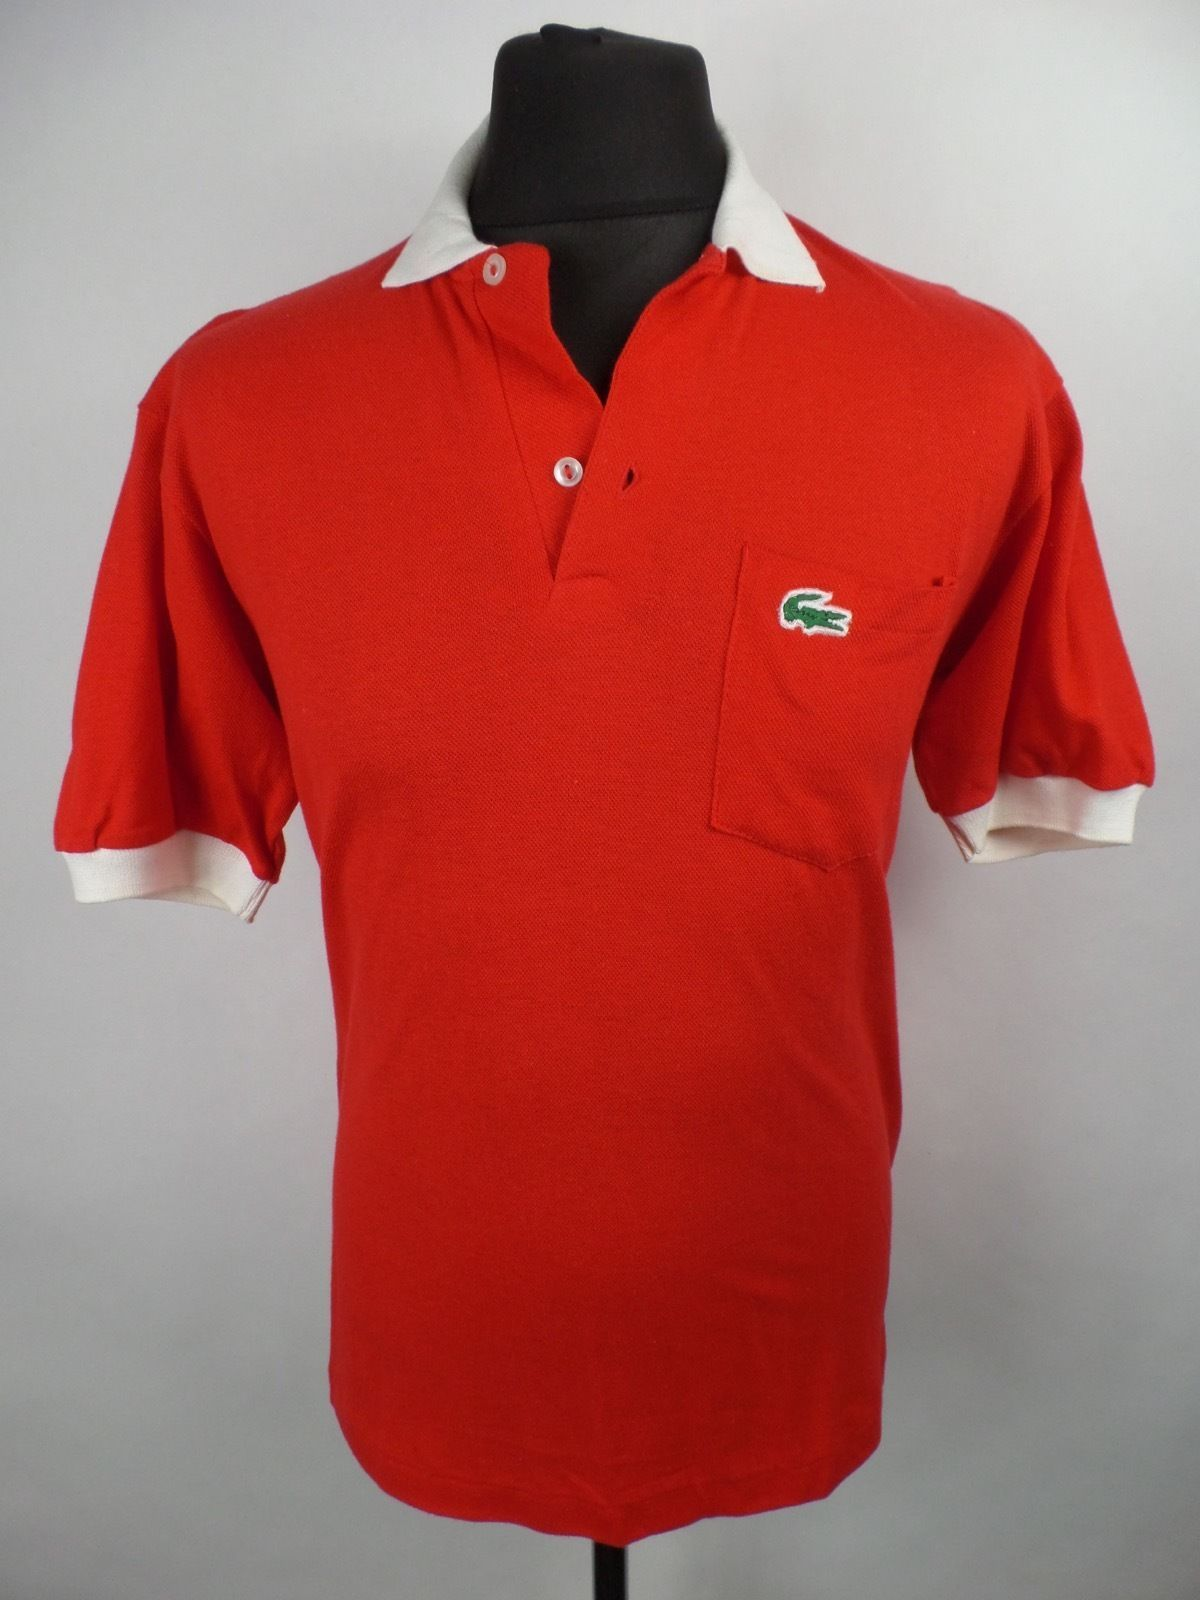 Vintage LACOSTE Polo Shirt | Mens M | Retro Tee Croc 70s 80s in Clothing,